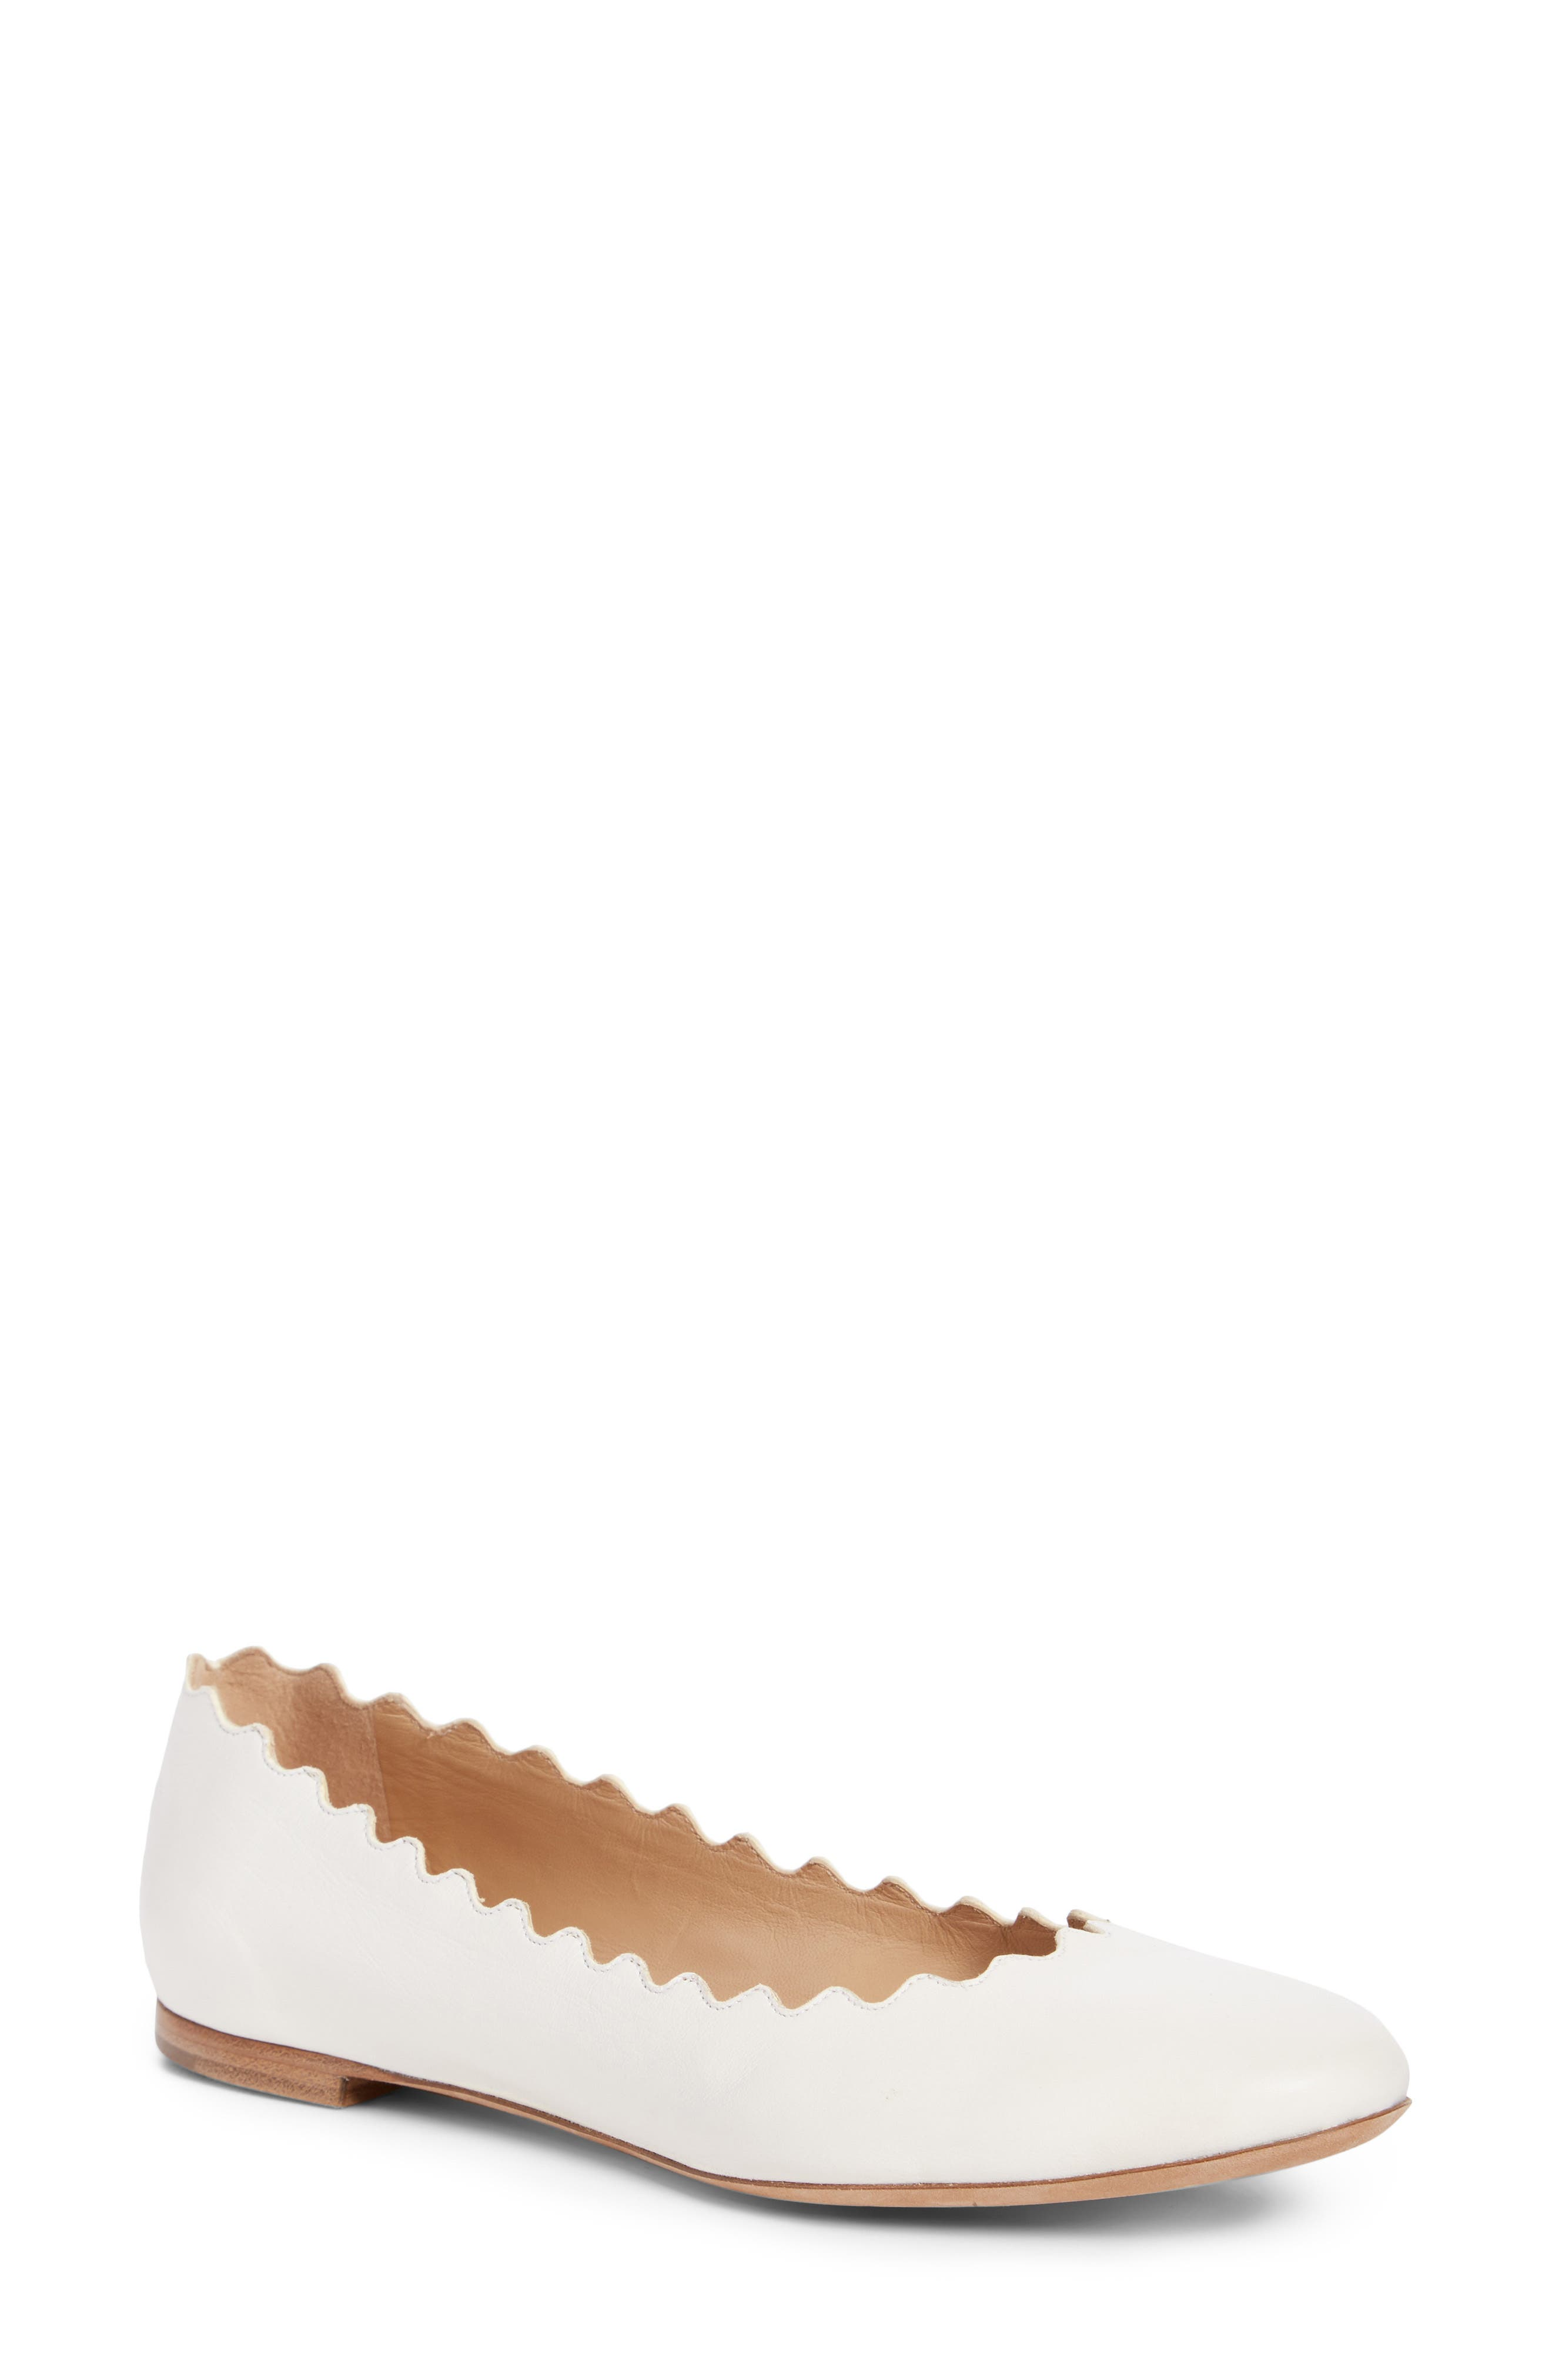 'Lauren' Scalloped Ballet Flat, Main, color, CLOUDY WHITE